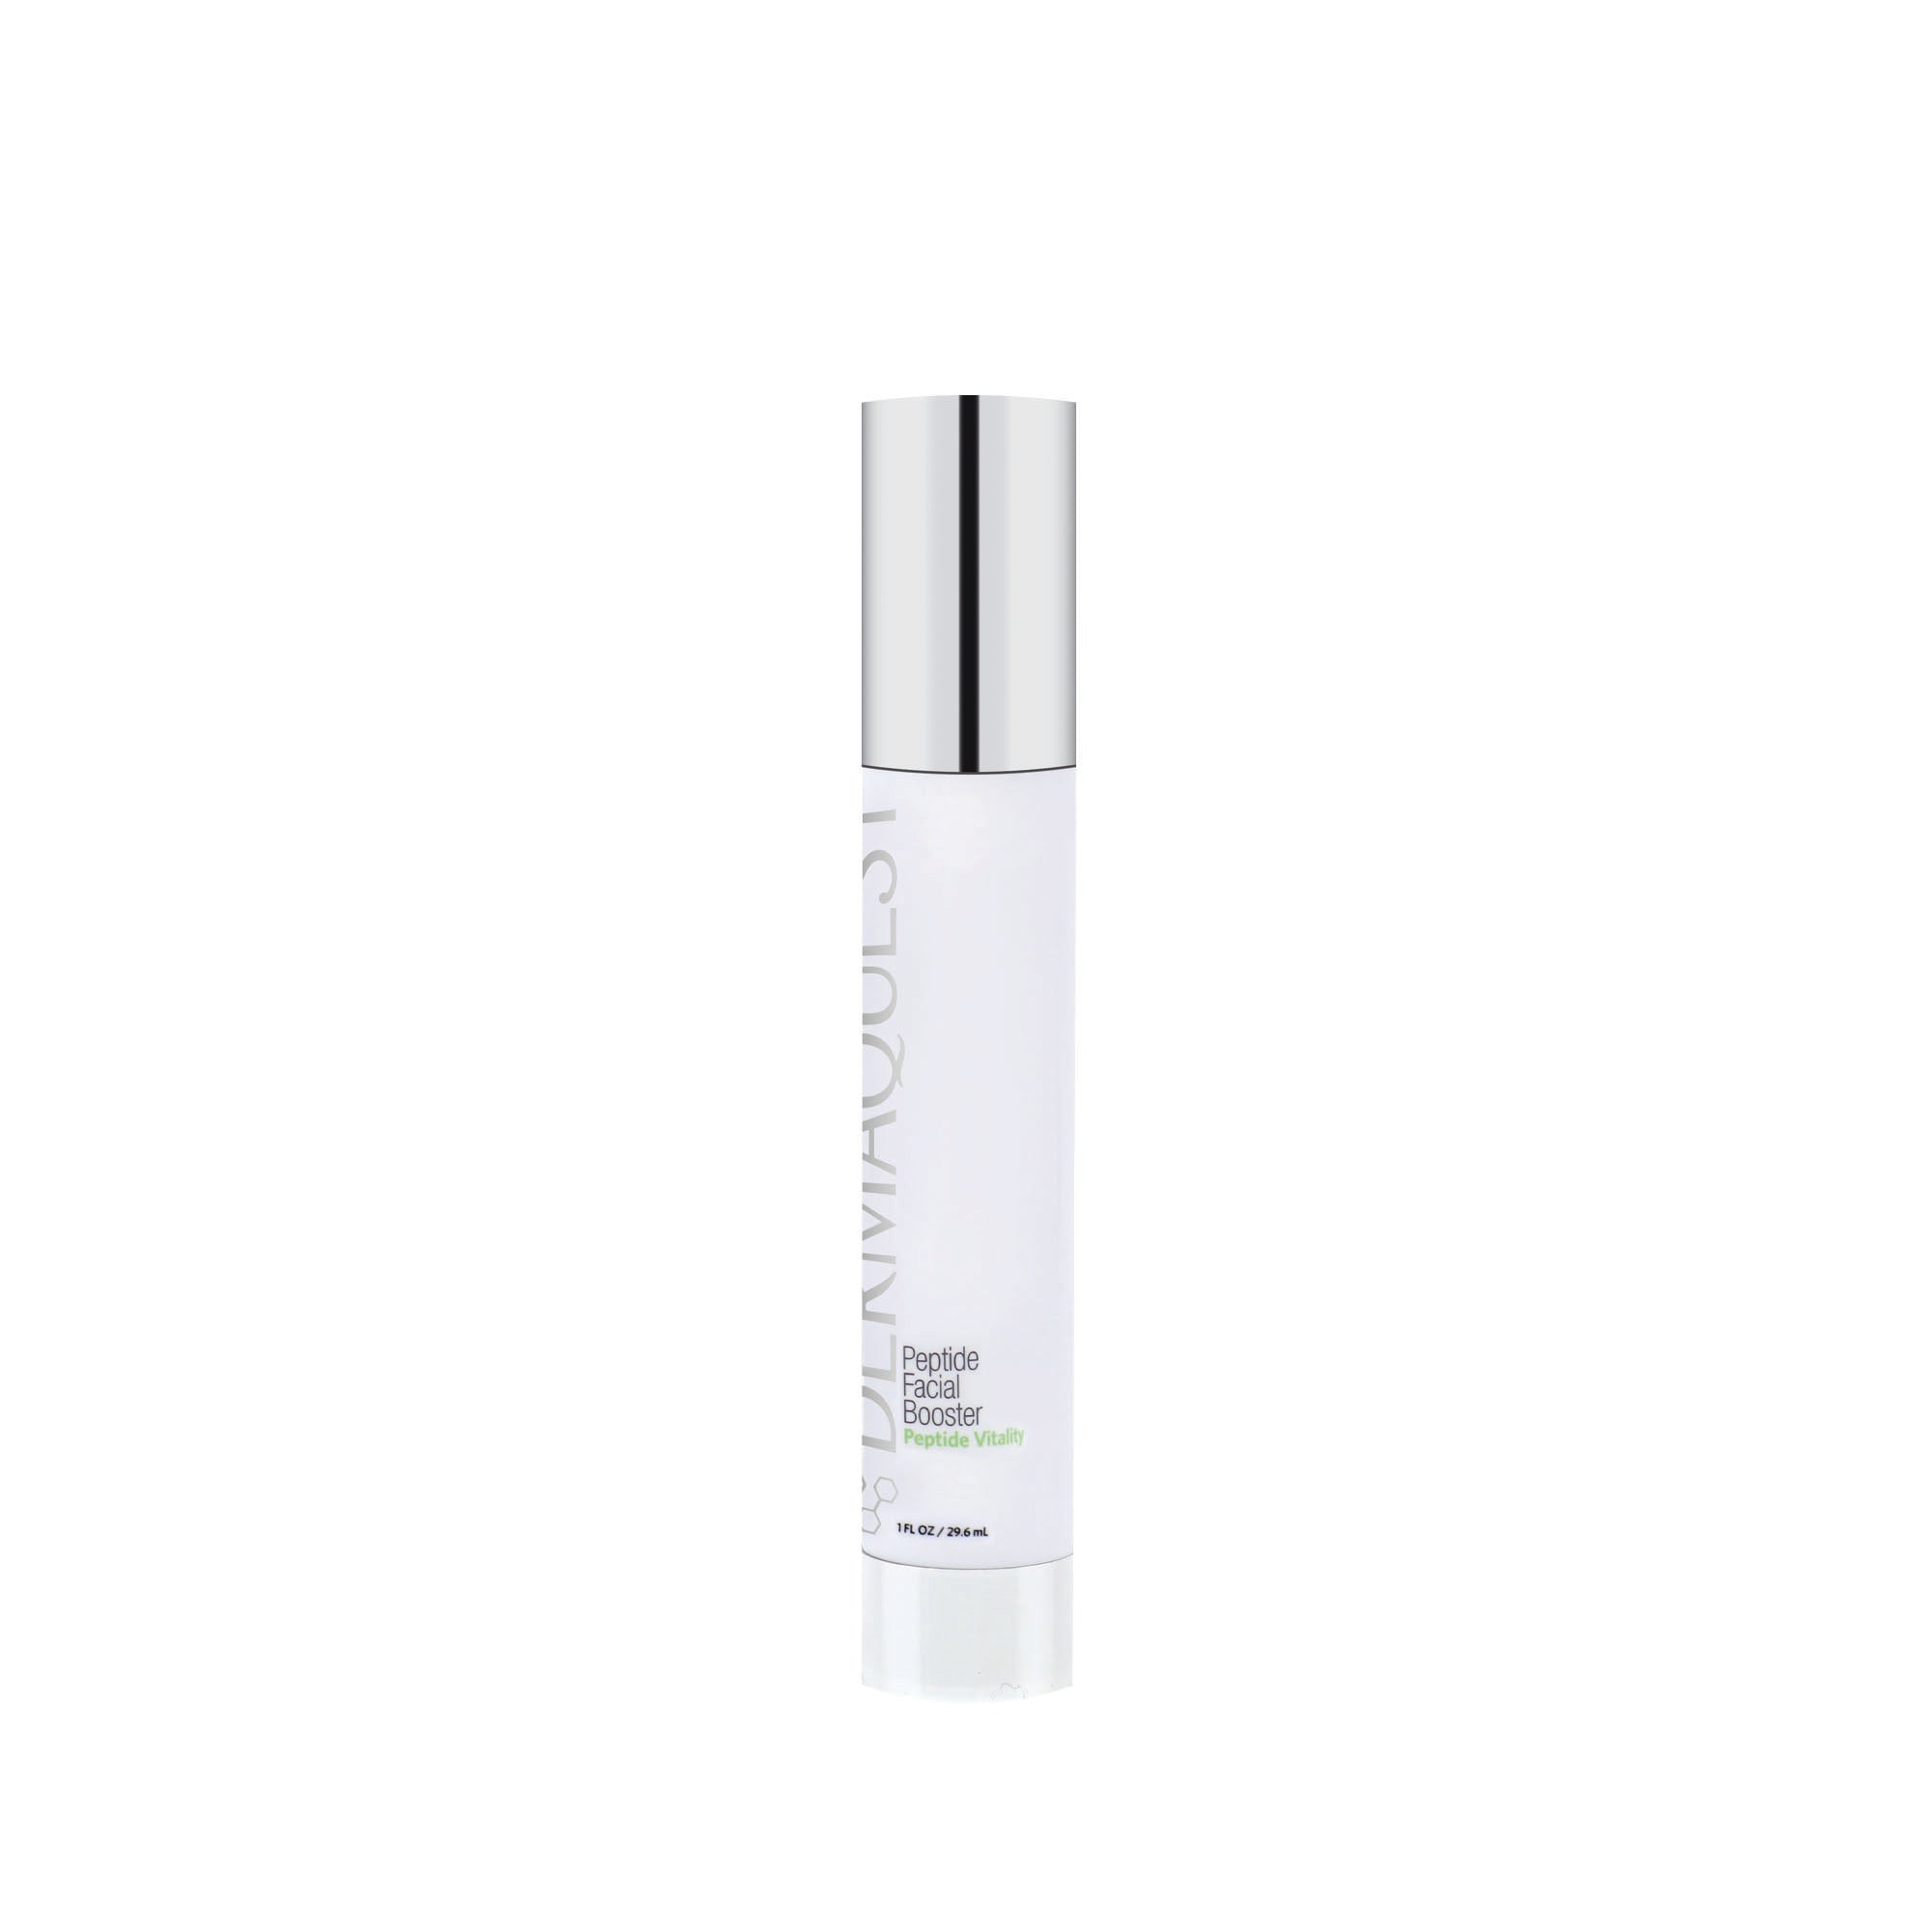 DERMAQUEST Peptide Facial Booster  29.6ml - $330.00